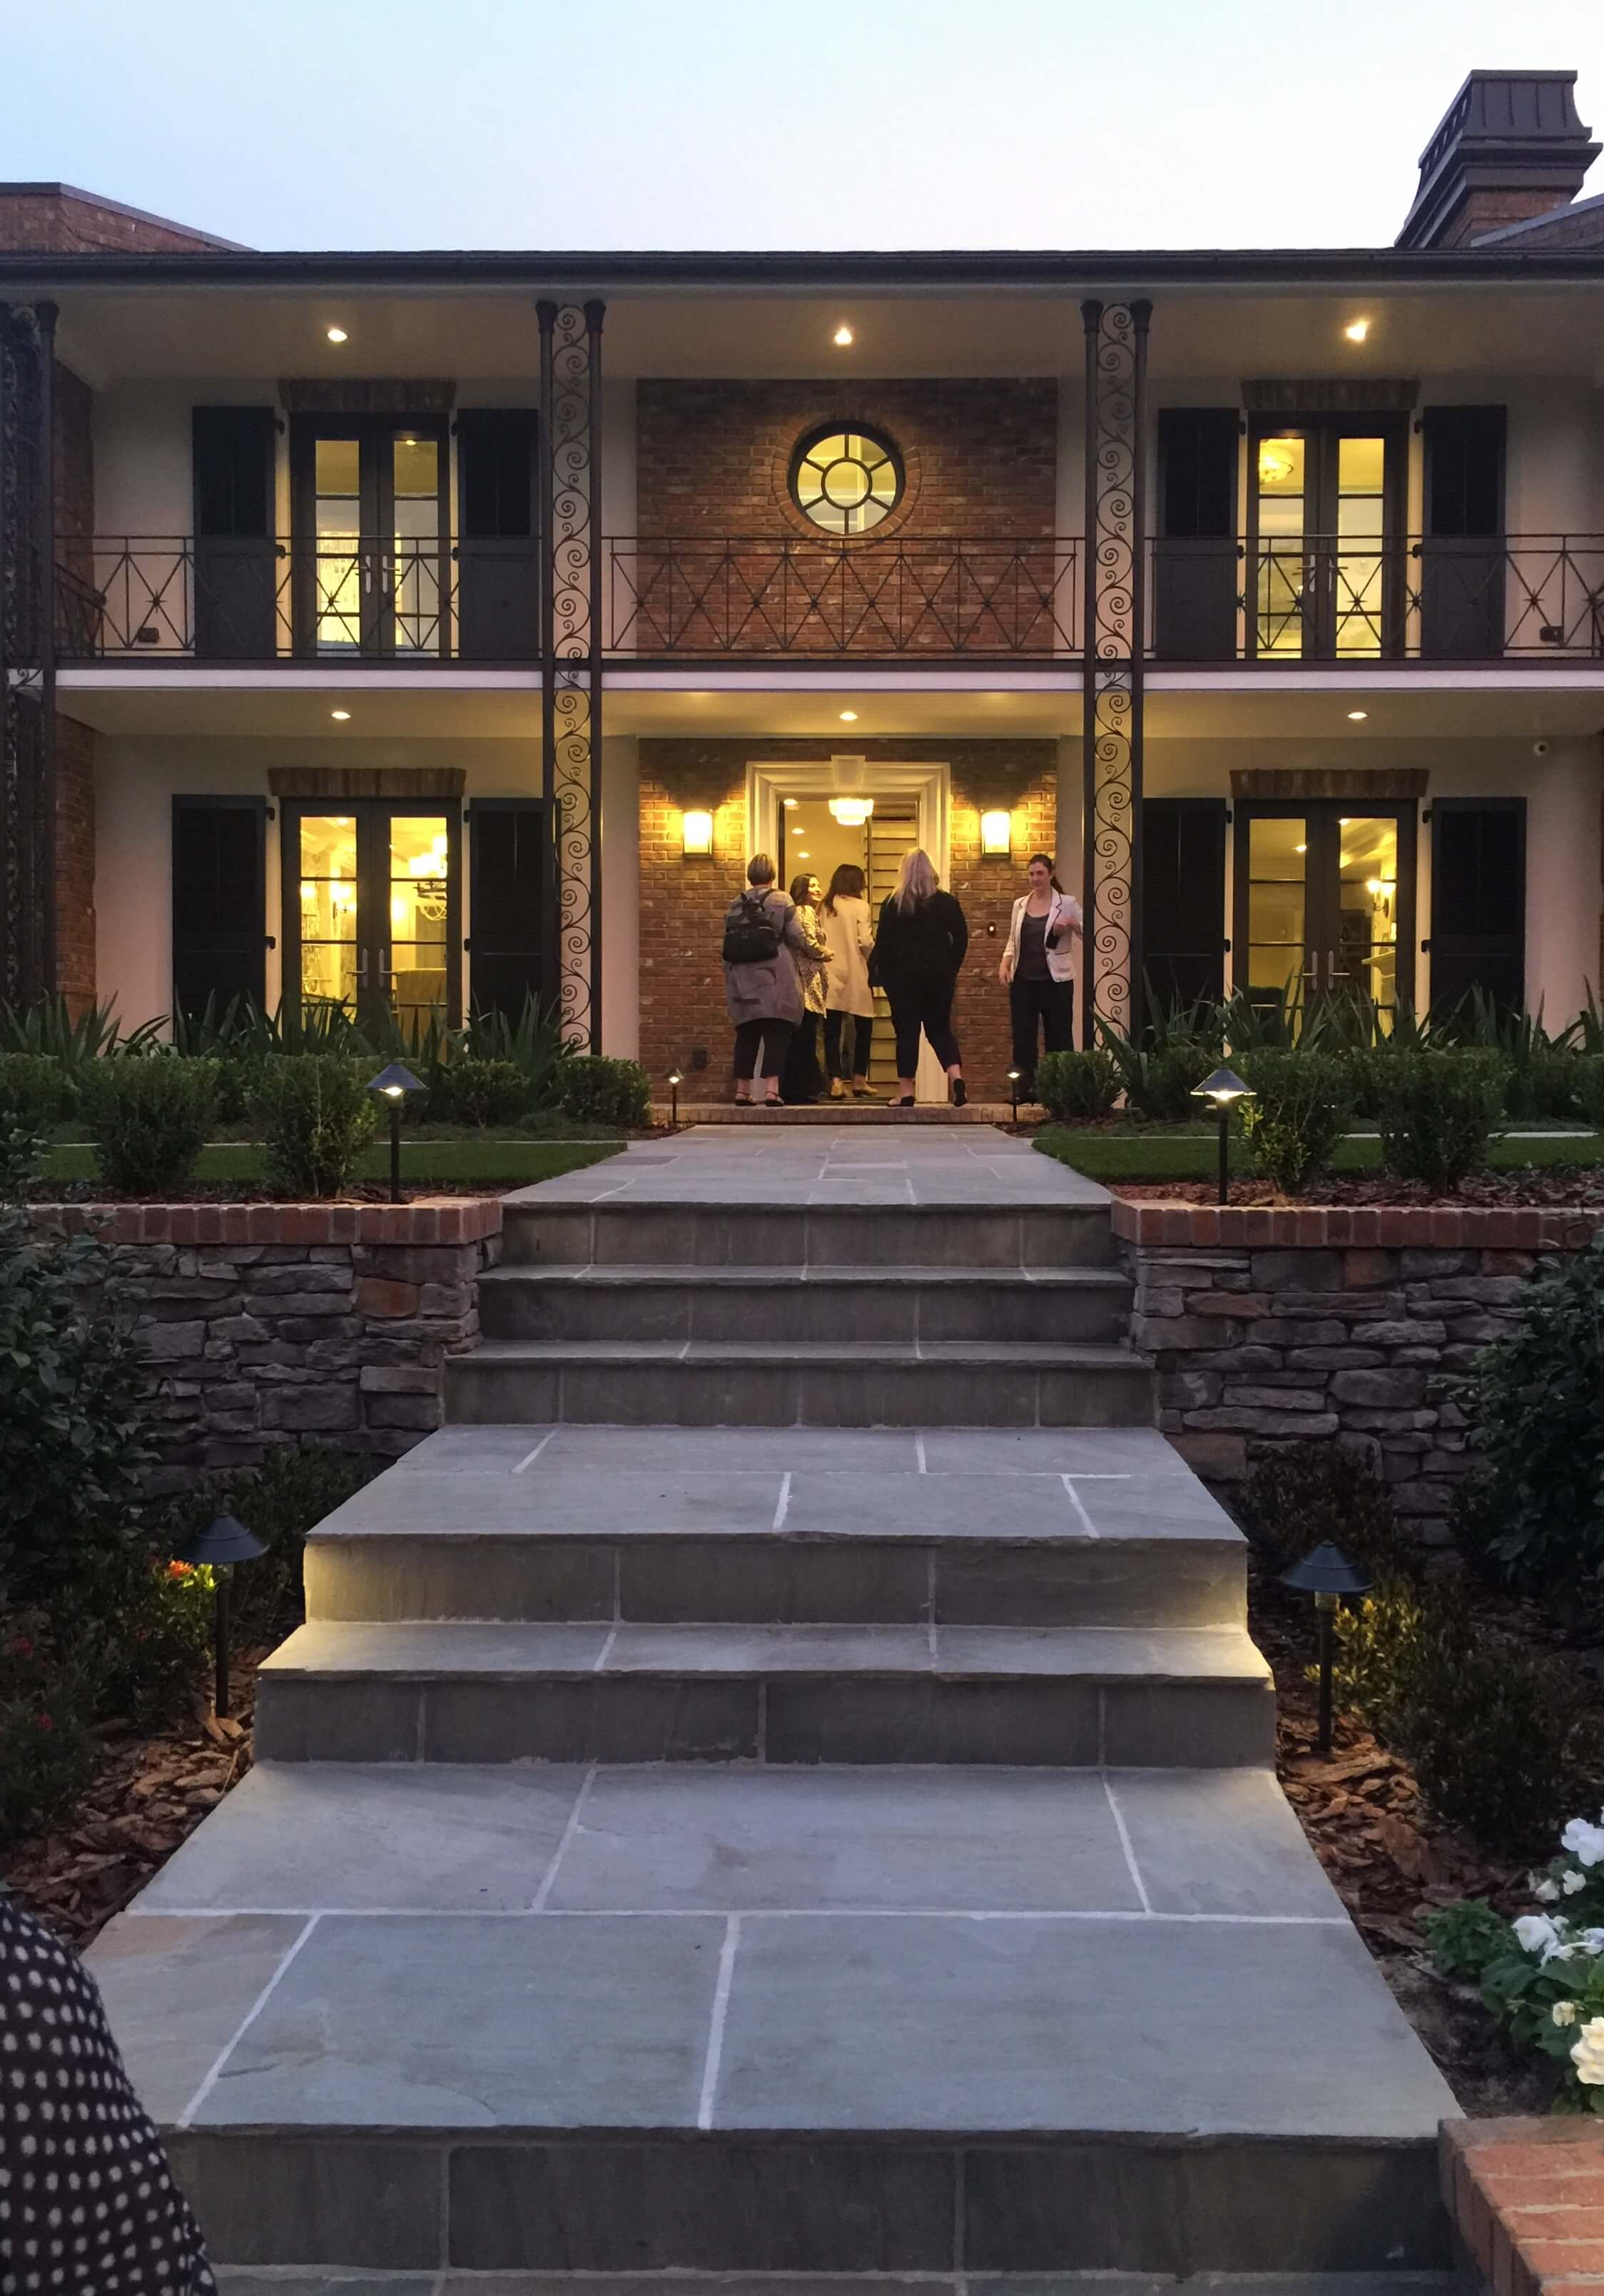 Our tour began at dusk. This home has such lovely curb appeal. #curbappeal #frontdoor #frontporch